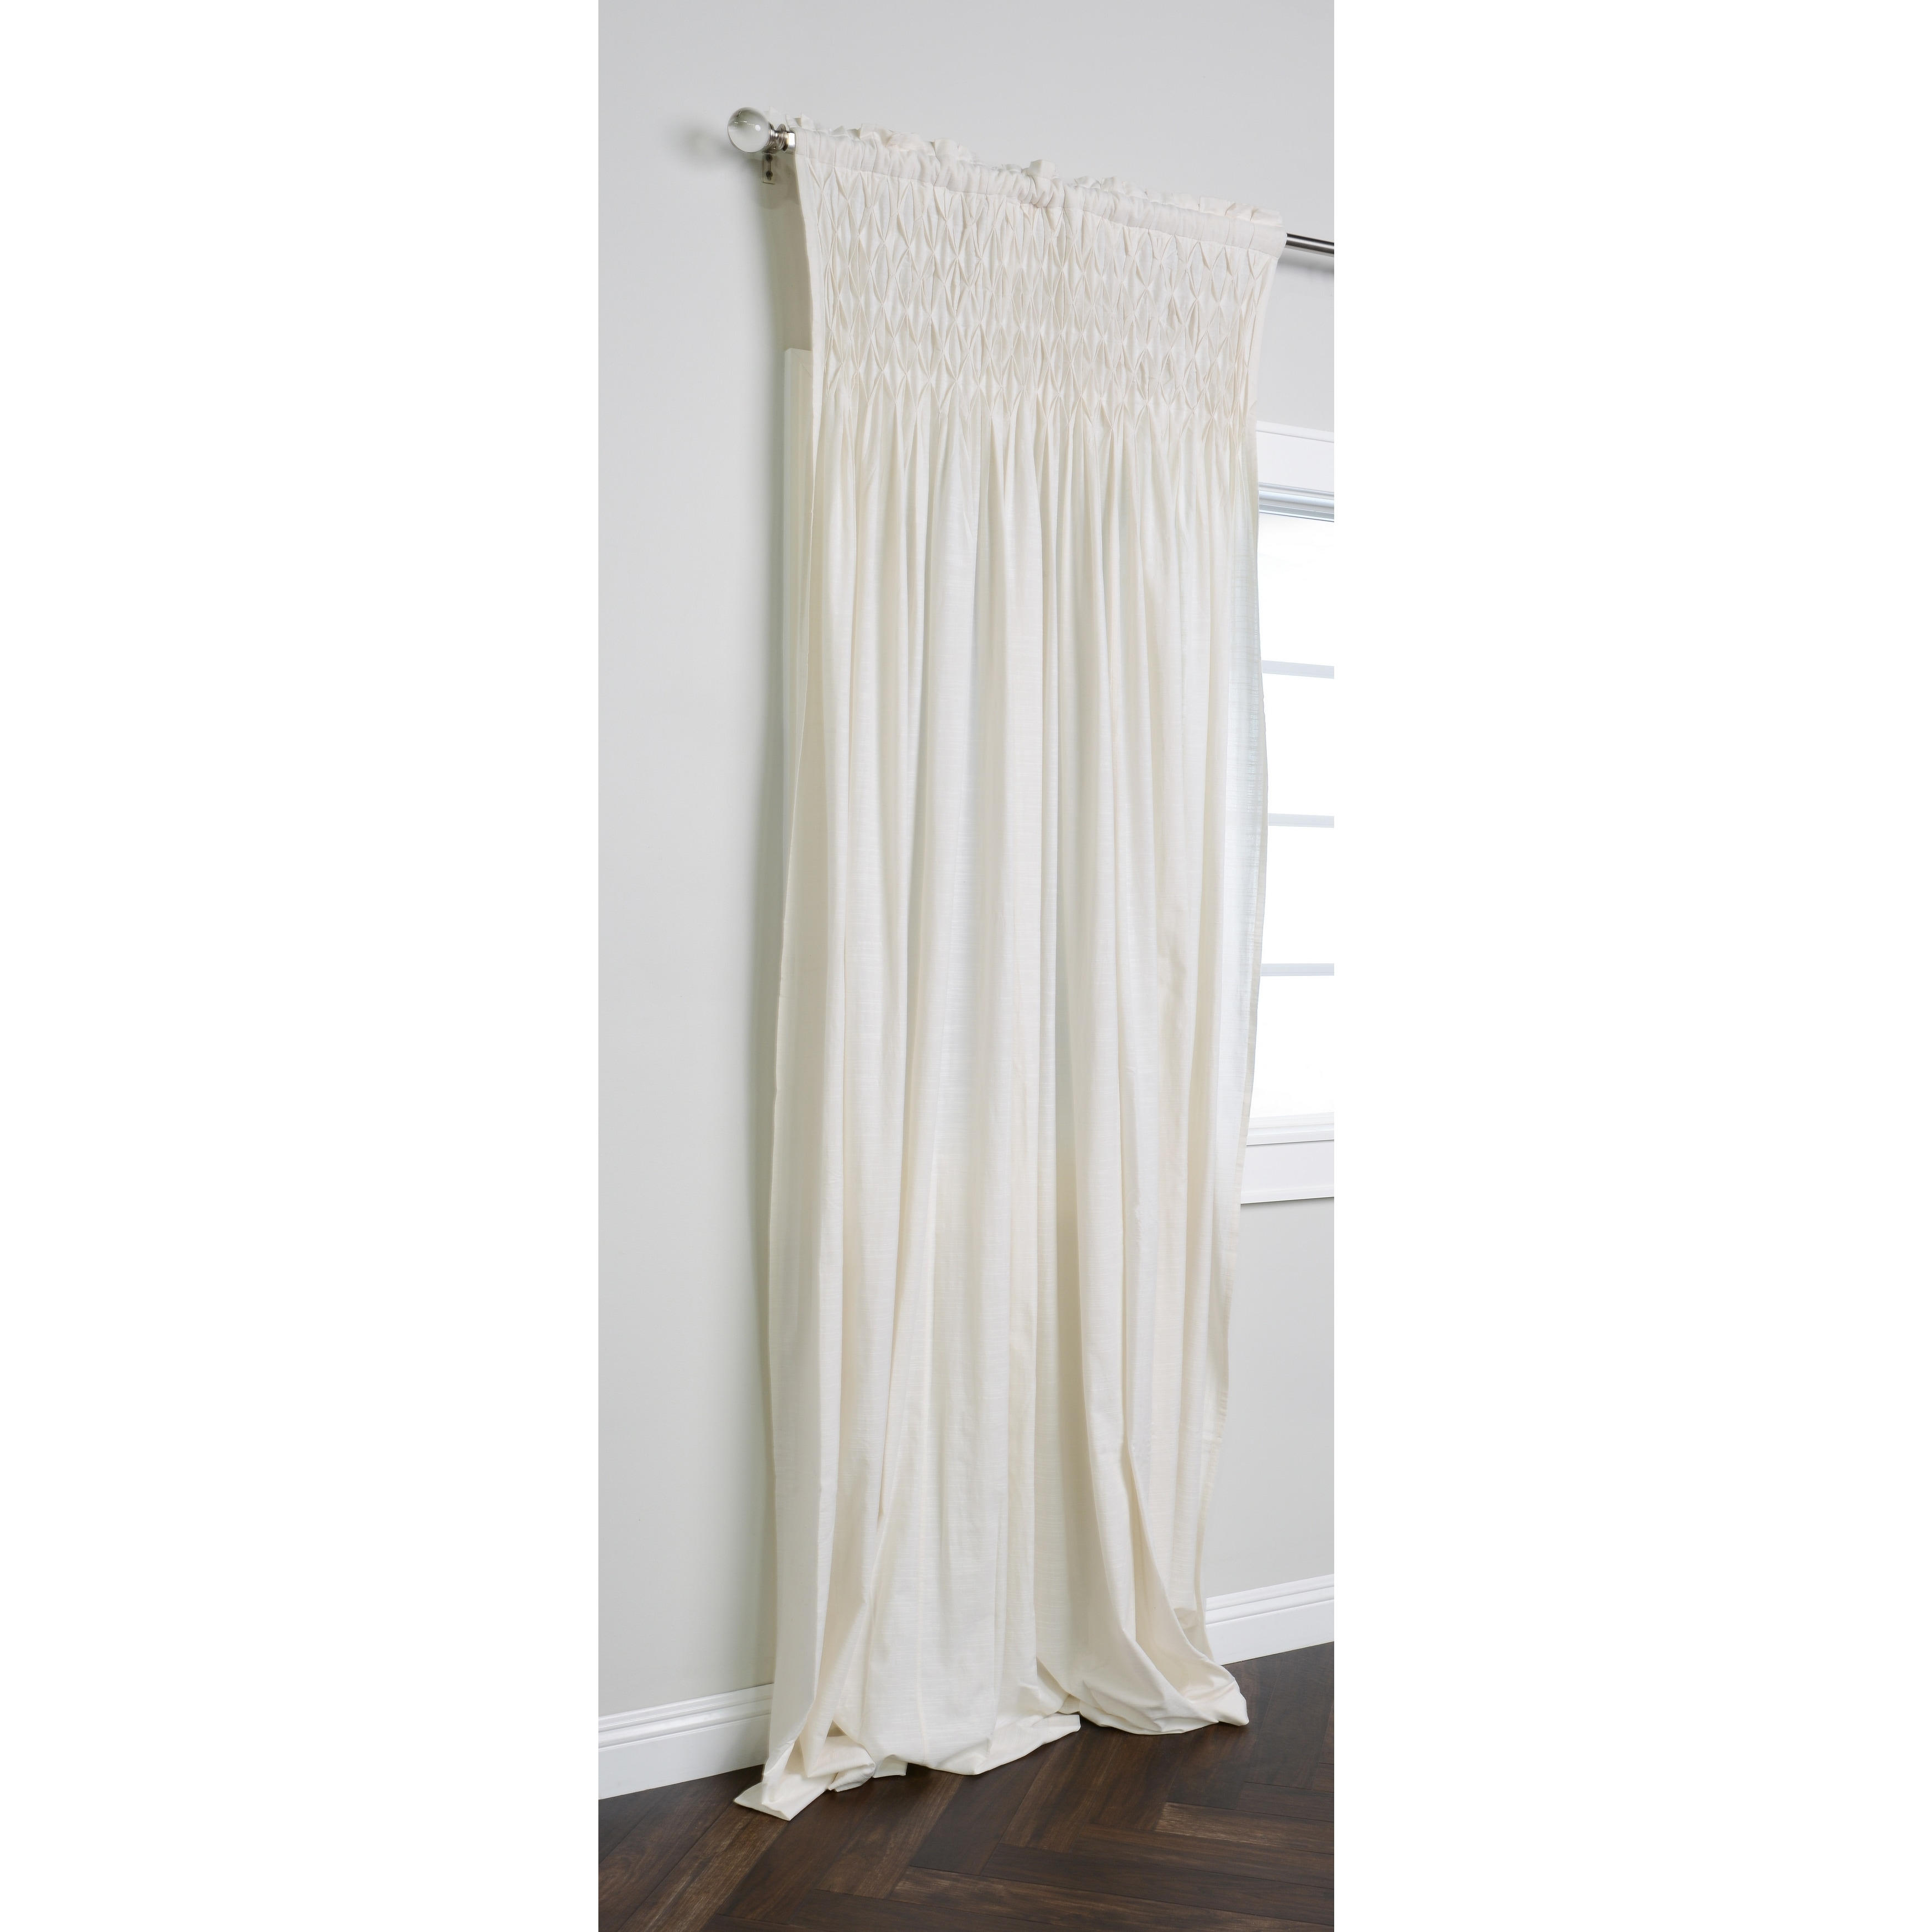 108 Long Shower Curtain Kosas Home Samuel 108 Inch Cream Cotton Smocked Curtain Panel